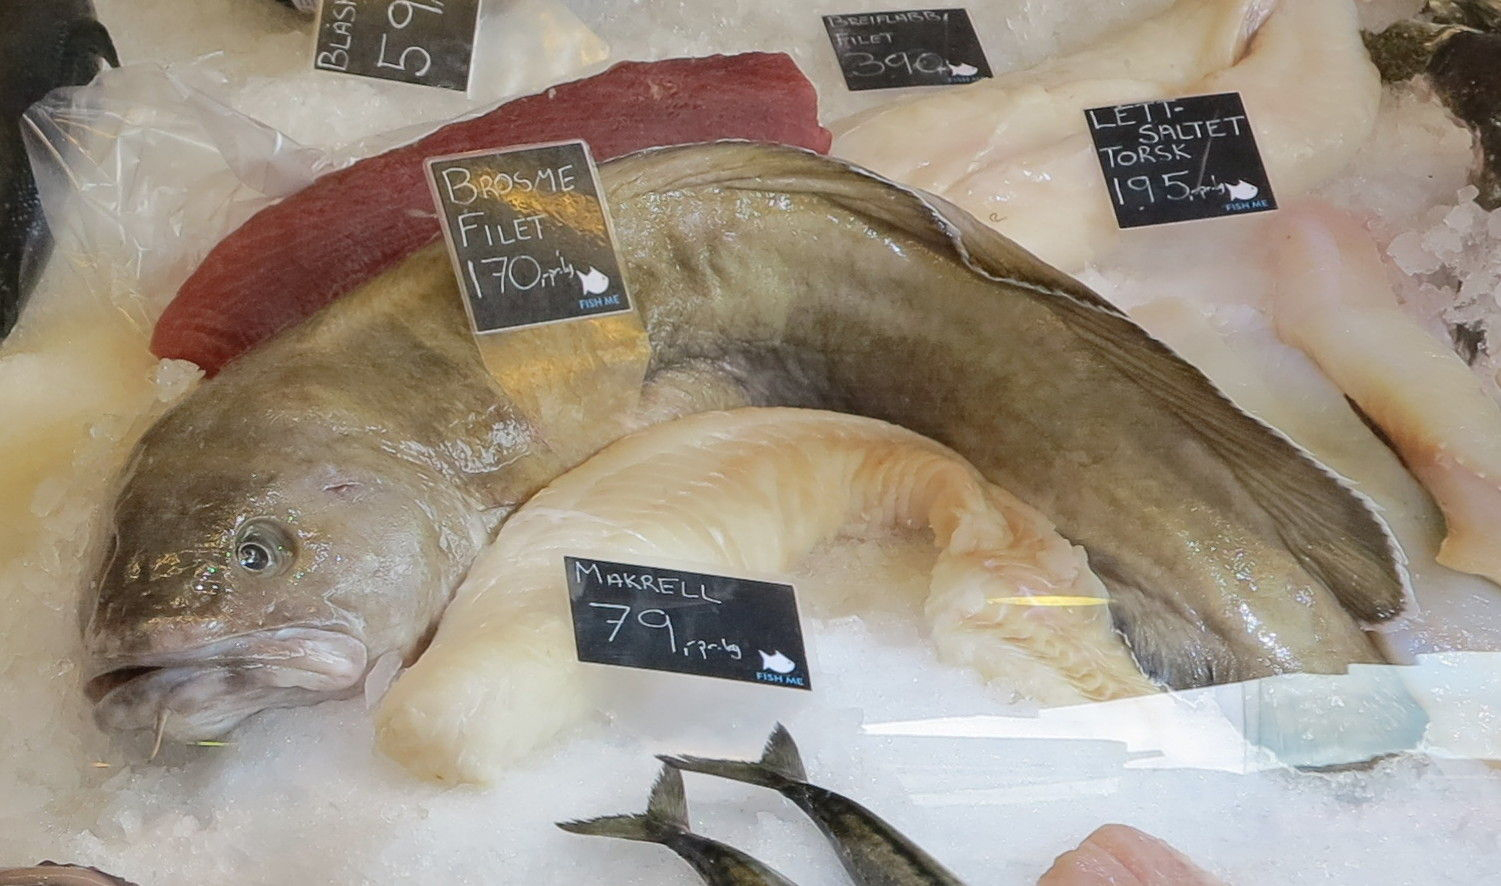 Cusk-fish-with-fillet-for-sale